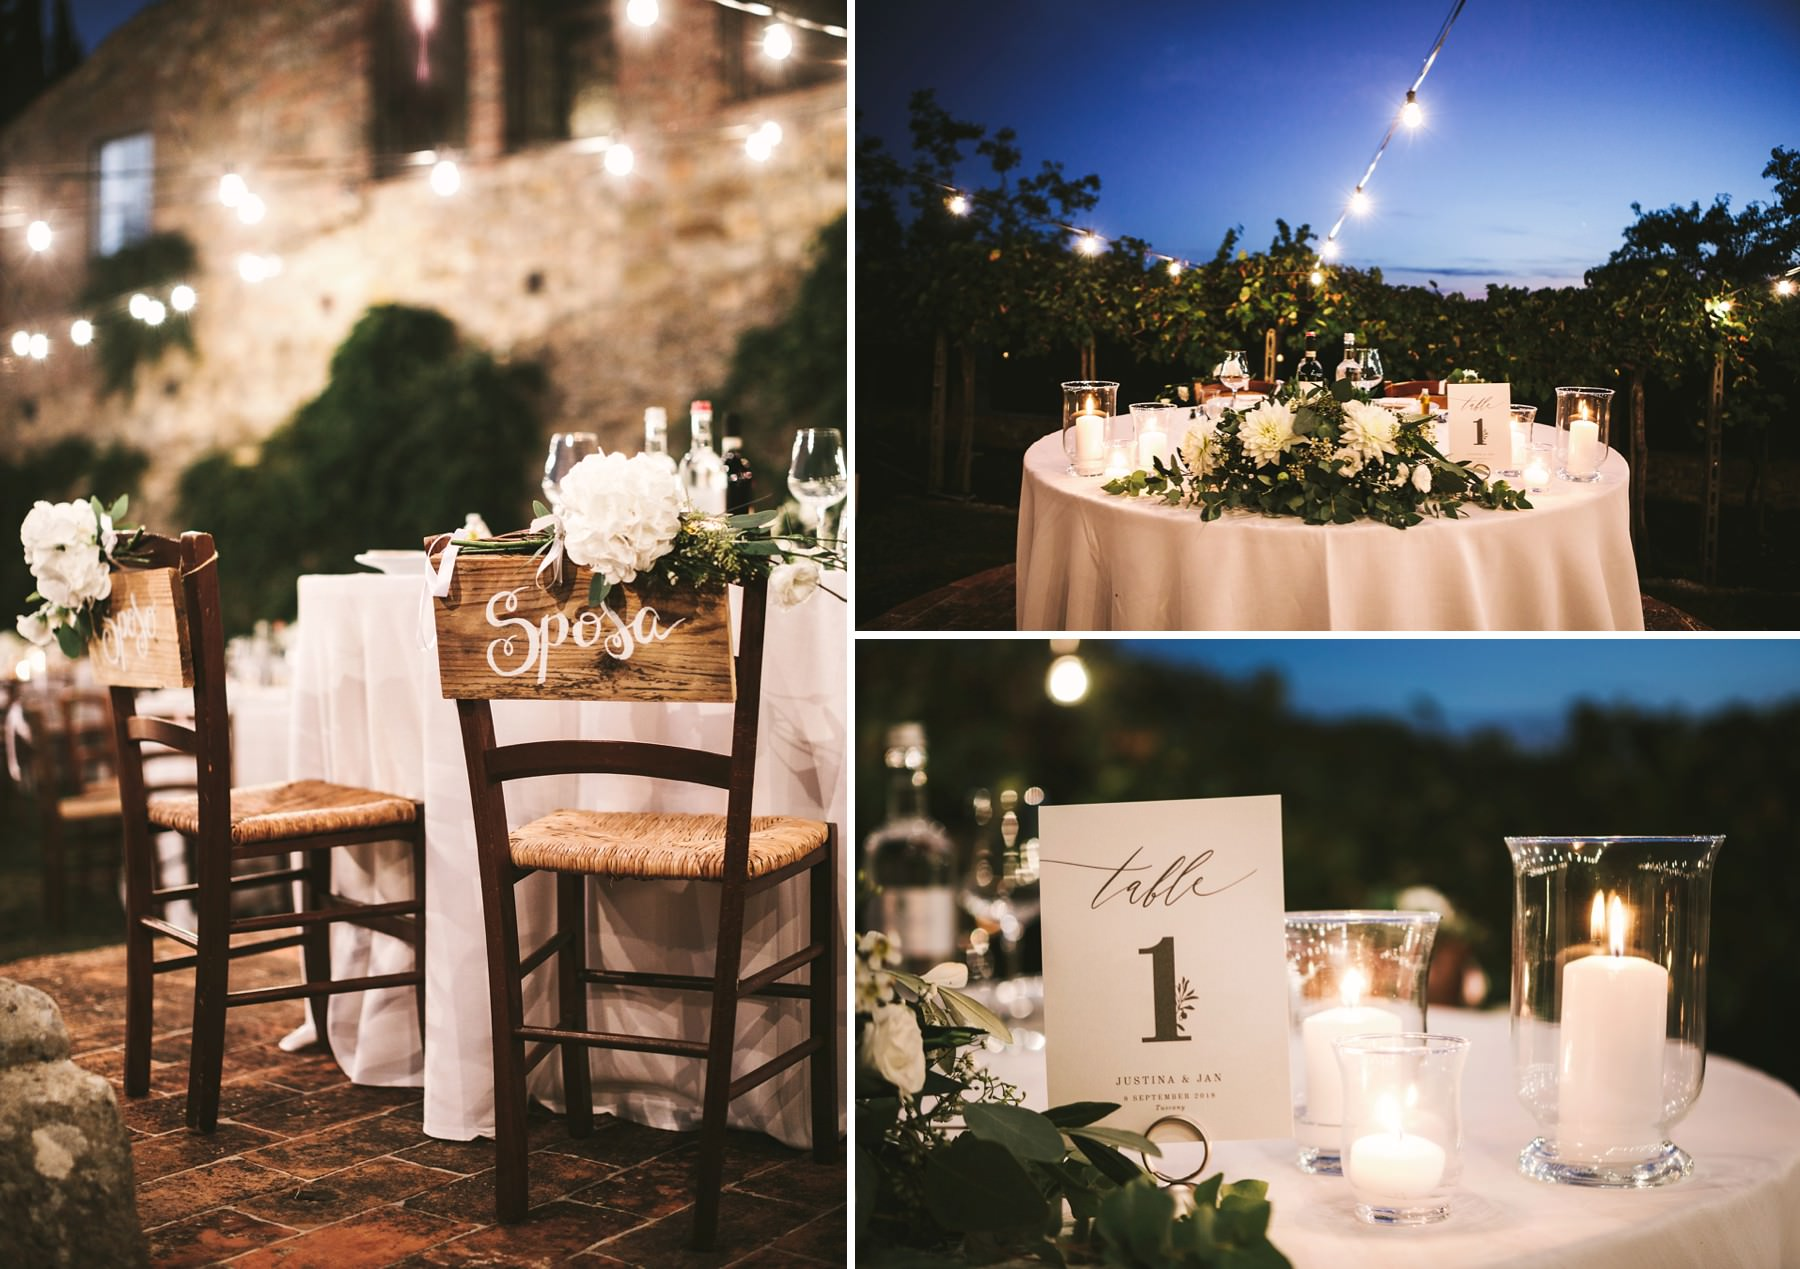 Stunning dinner setup at Montelucci Country Resort for a elegant destination wedding in Tuscany